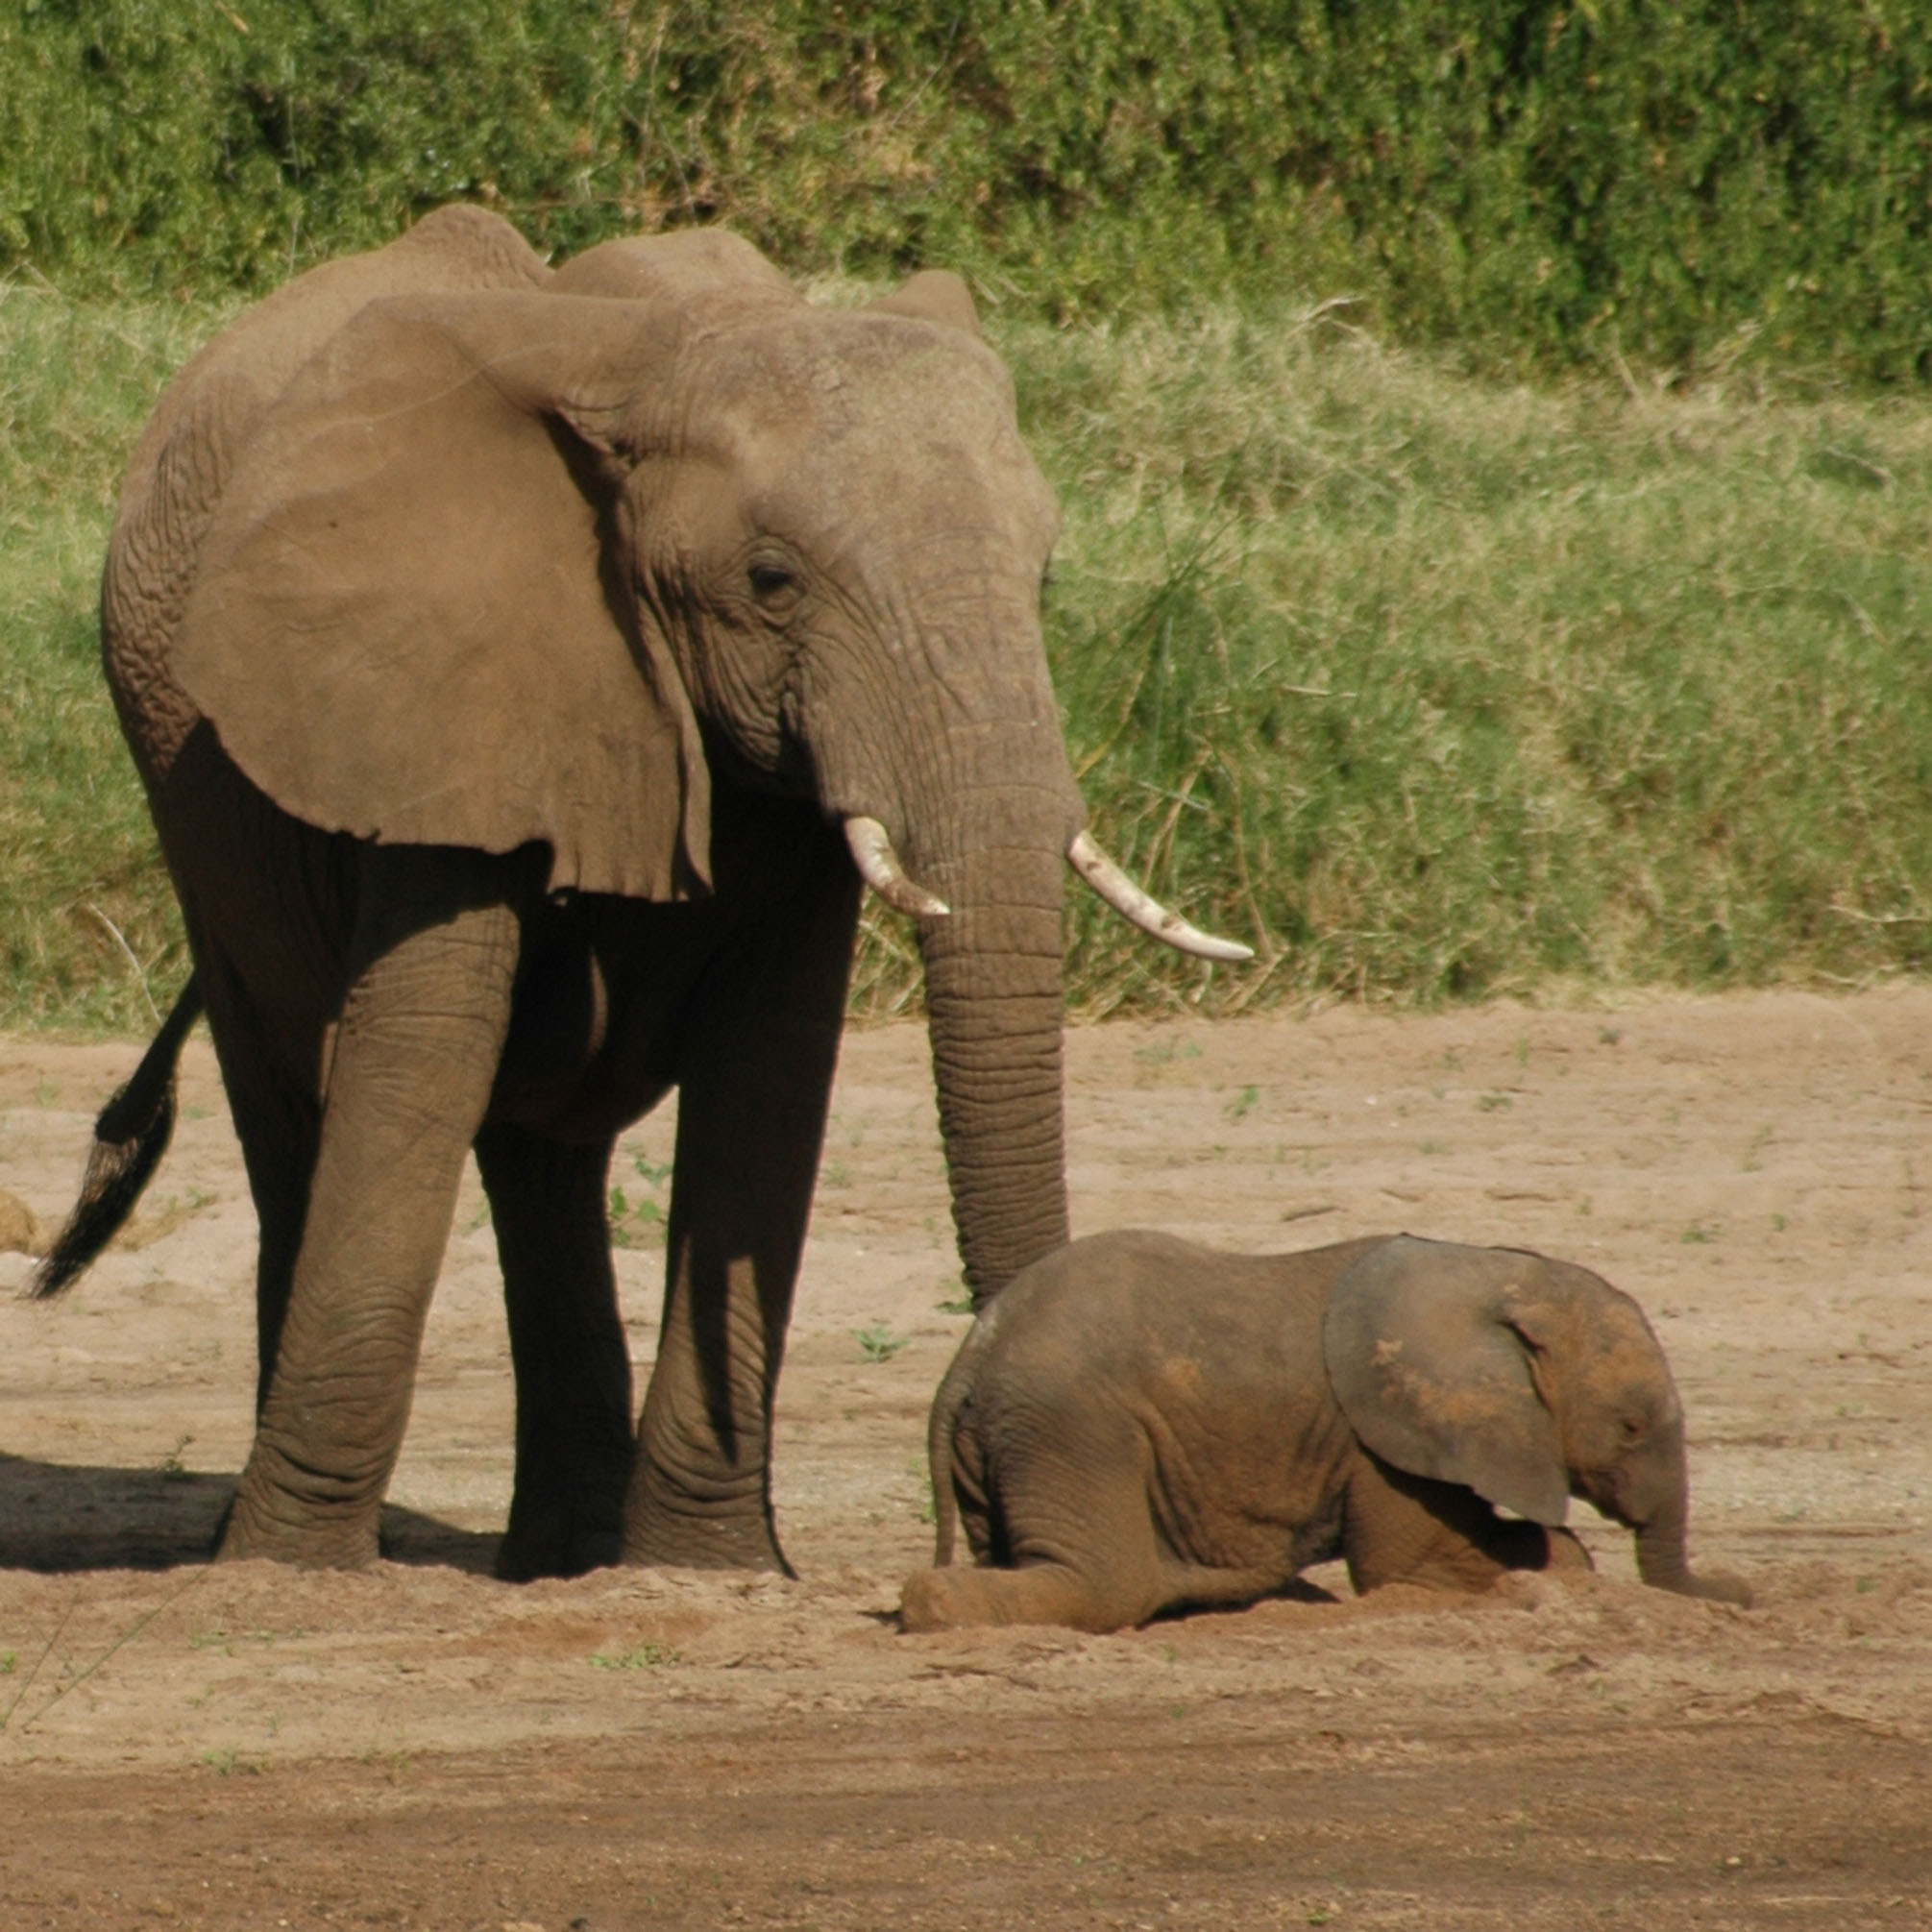 African elephants in Kenya's Samburu National Reserve. Note the adult elephant's tail hair. University of Utah geochemist Thure Cerling analyzed chemical isotopes in elephant tail hair to help track the diet and movements of the giant creatures, which have international status as endangered animals.